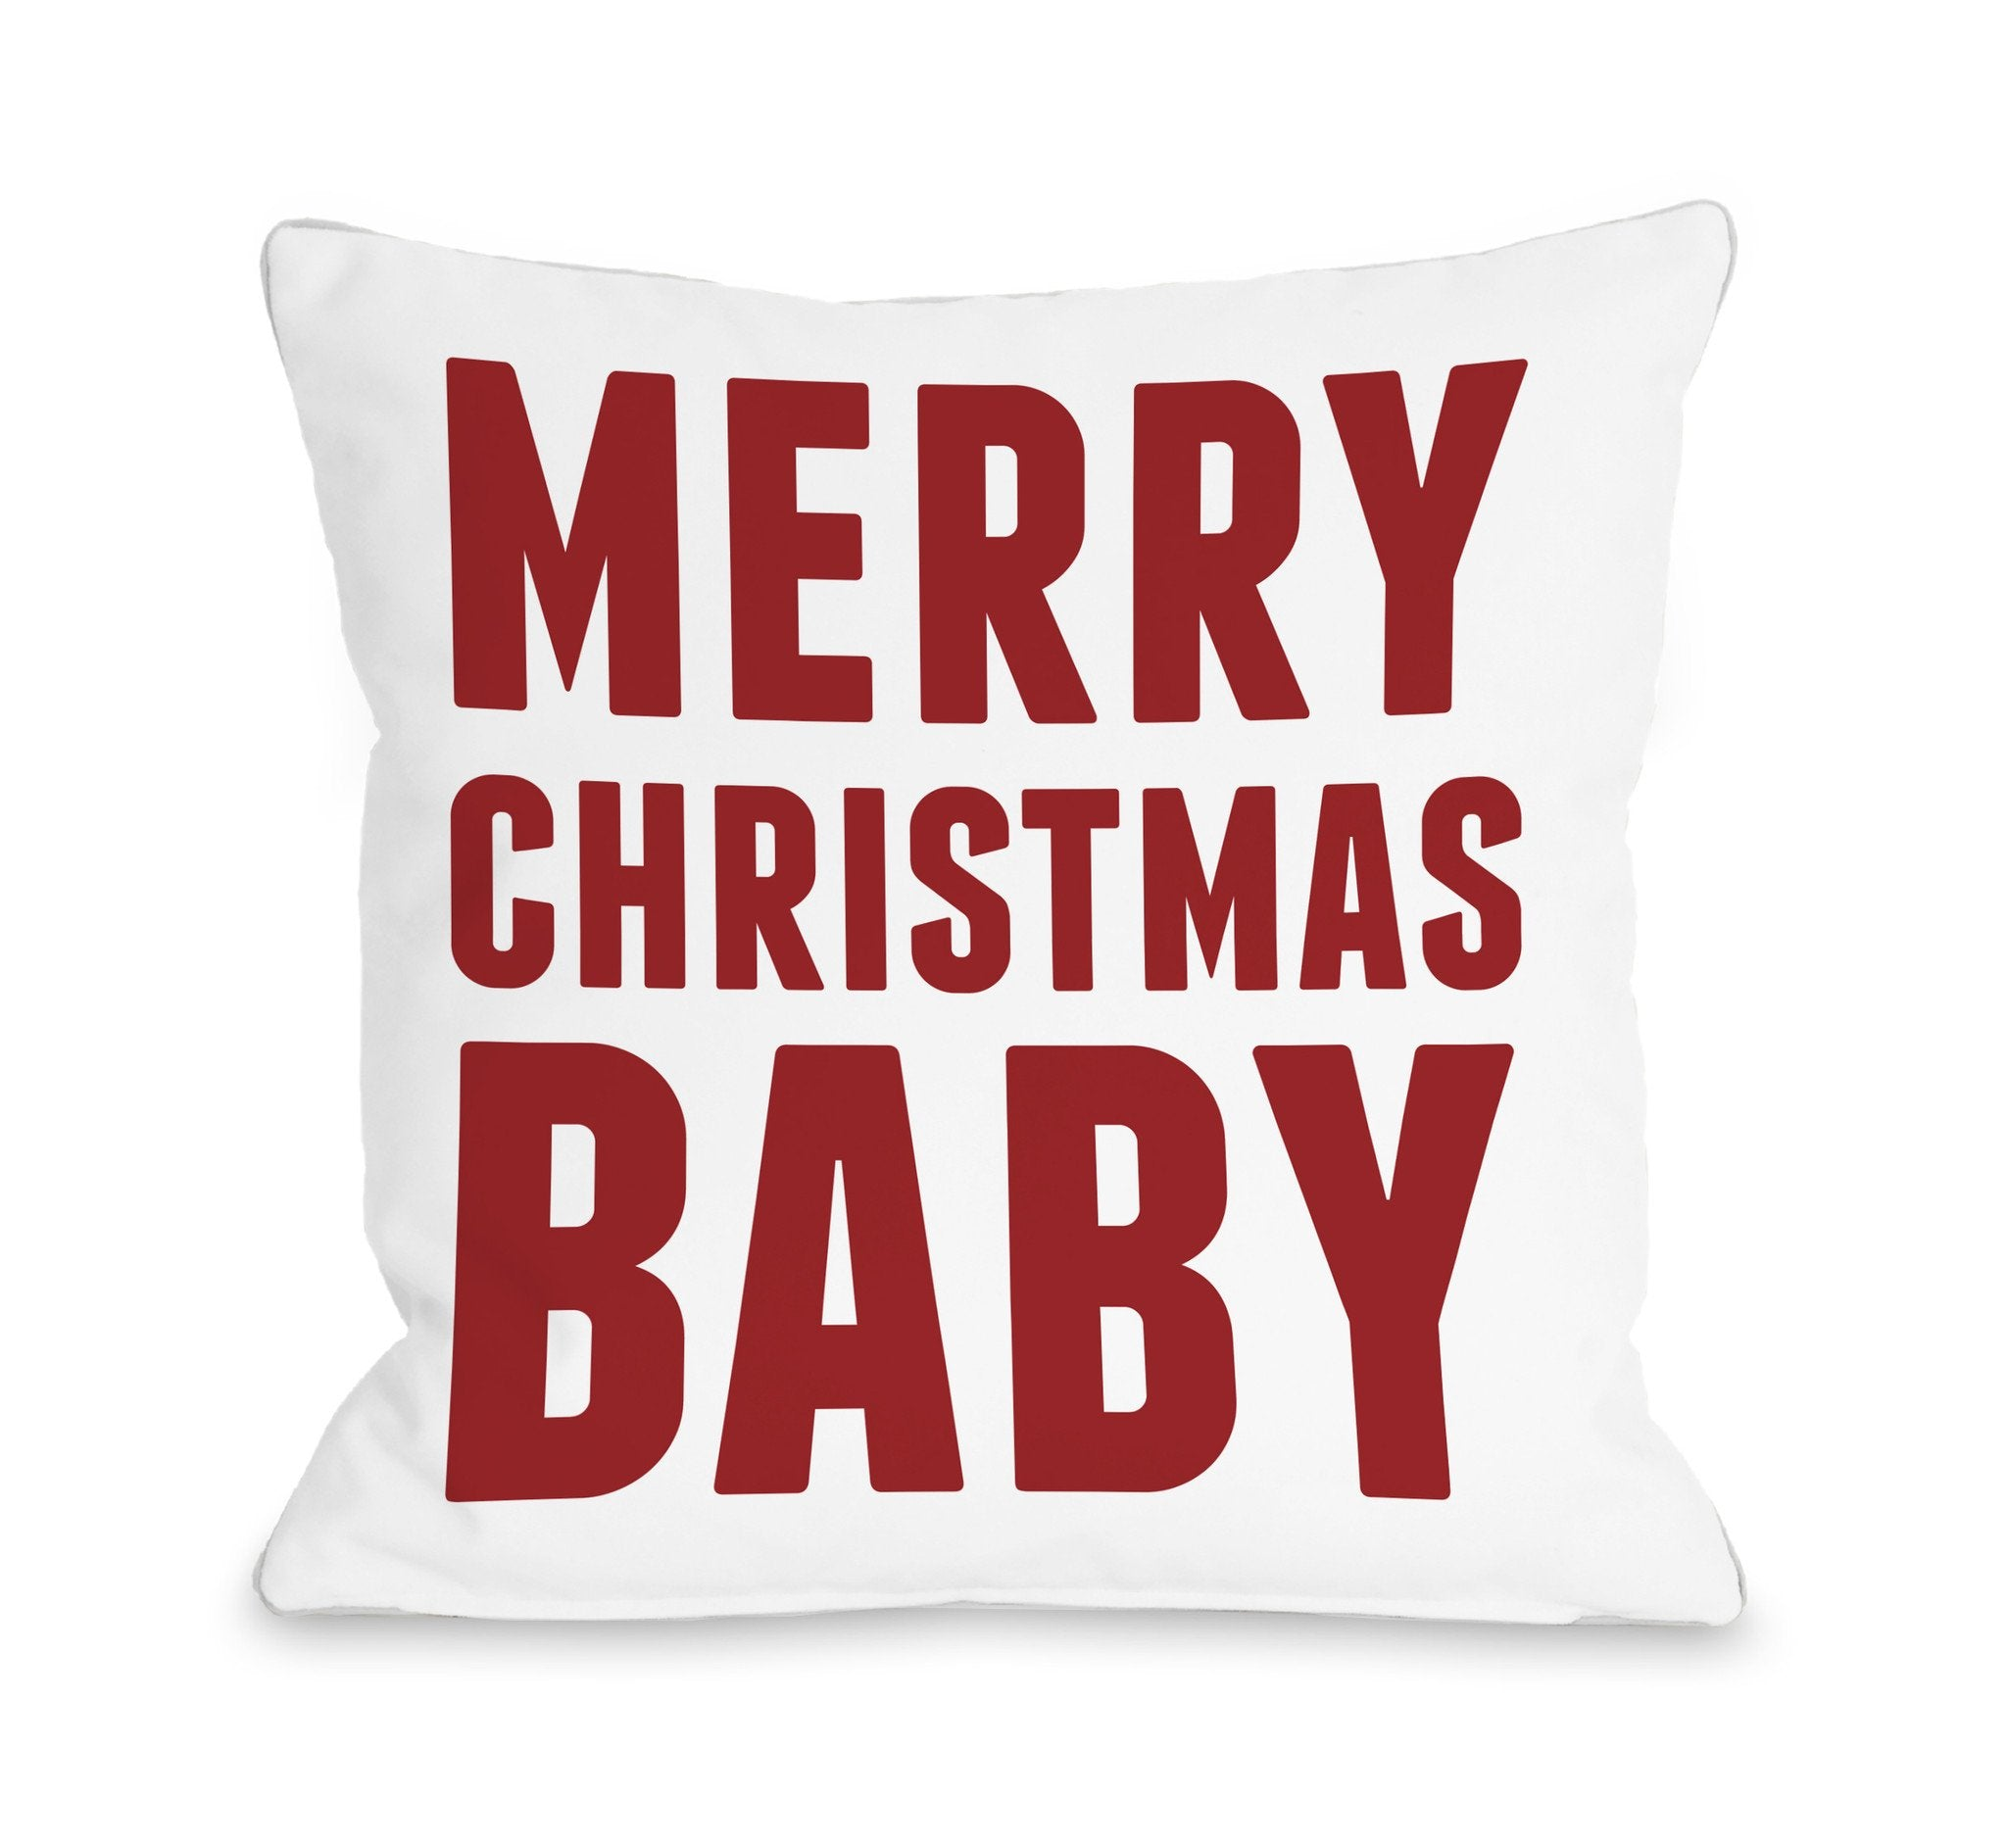 Merry Christmas Baby Throw Pillow